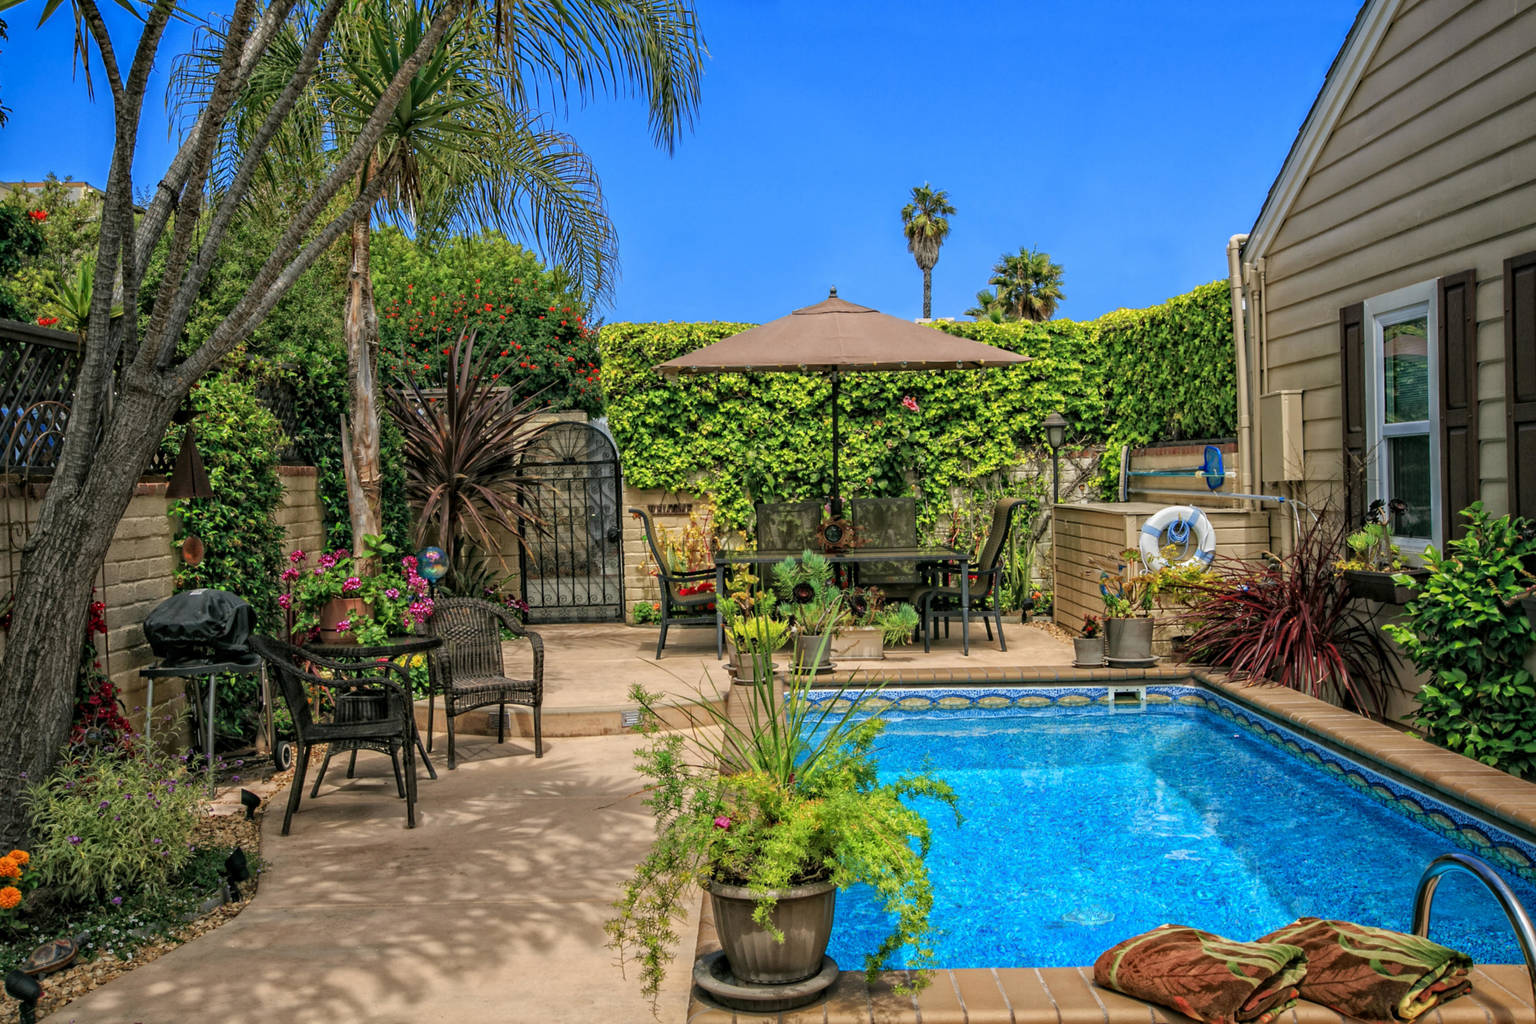 San Diego Bed and Breakfast